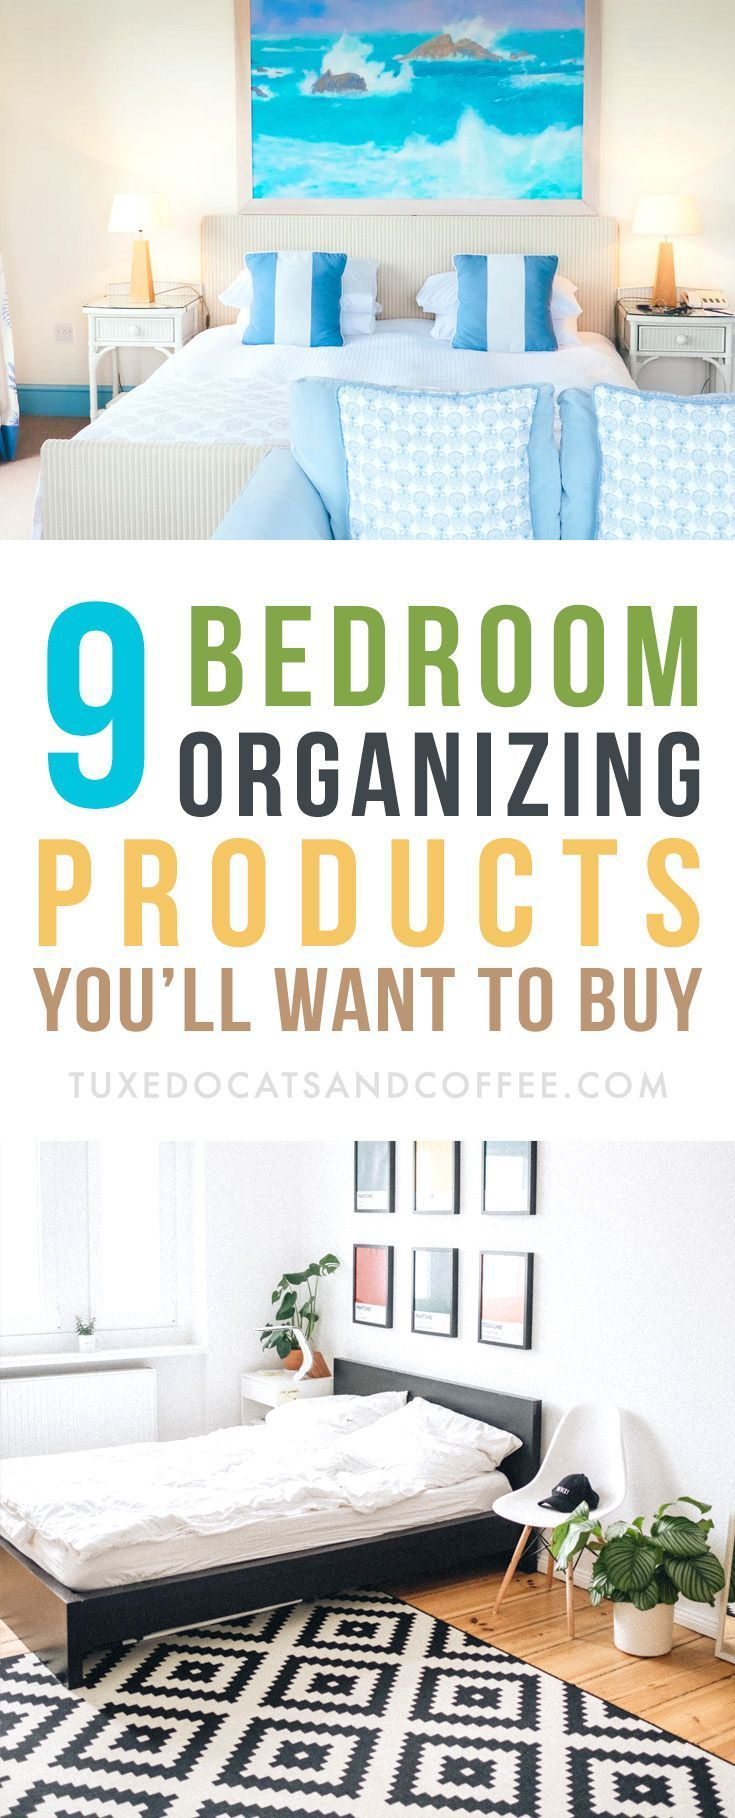 Is your bedroom more of a cluttered mess than a peaceful ...